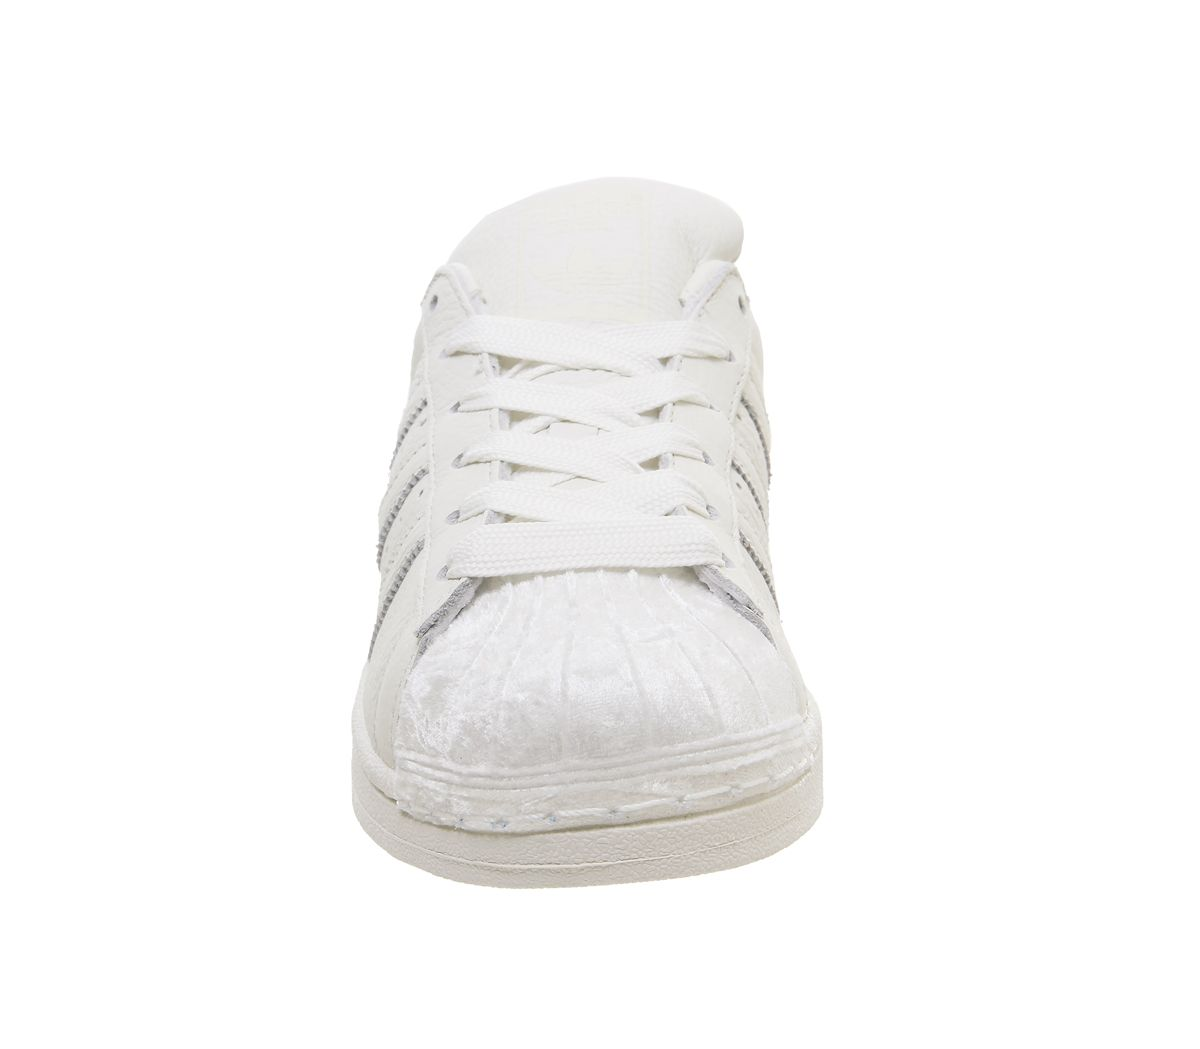 3f6501e2b4b Womens Adidas Superstar 1 Trainers Off White Off White Velvet ...